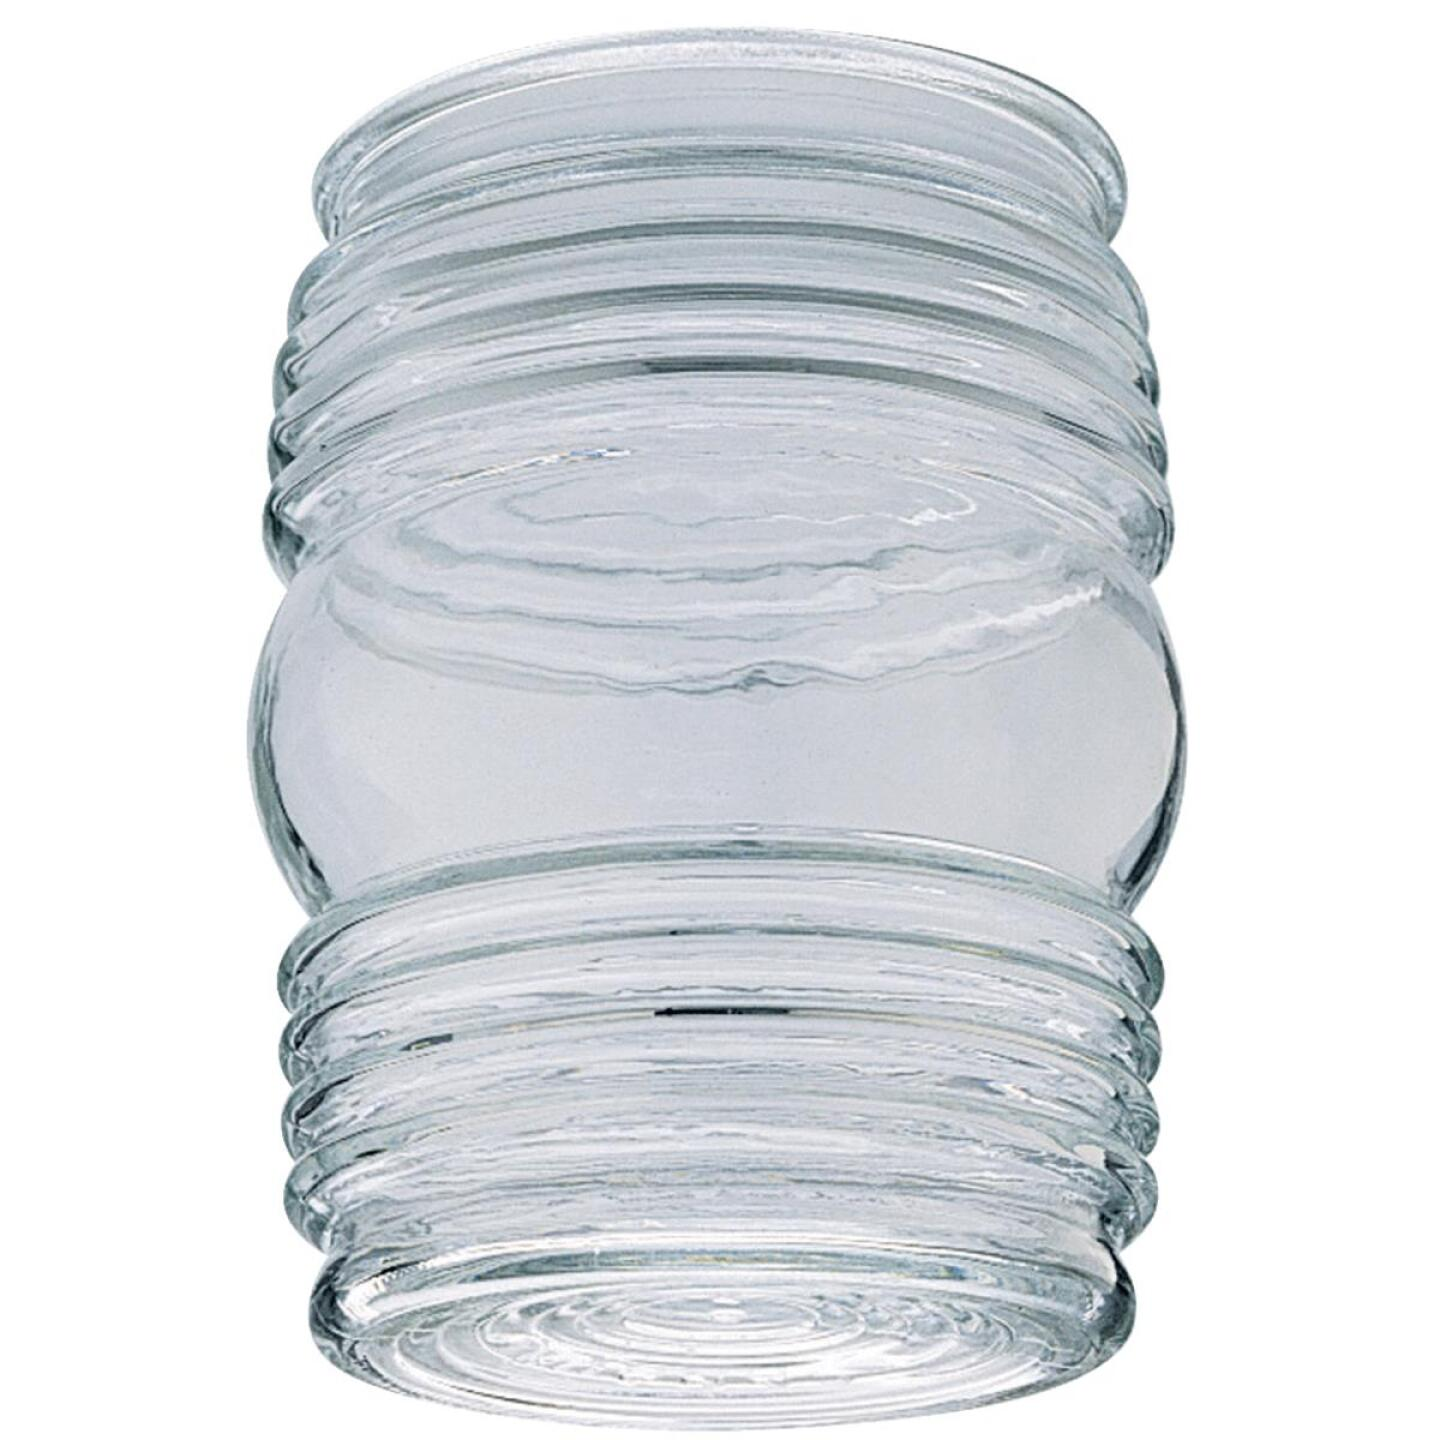 Westinghouse 4-3/4 In. Clear Jelly Jar Glass Shade Image 1